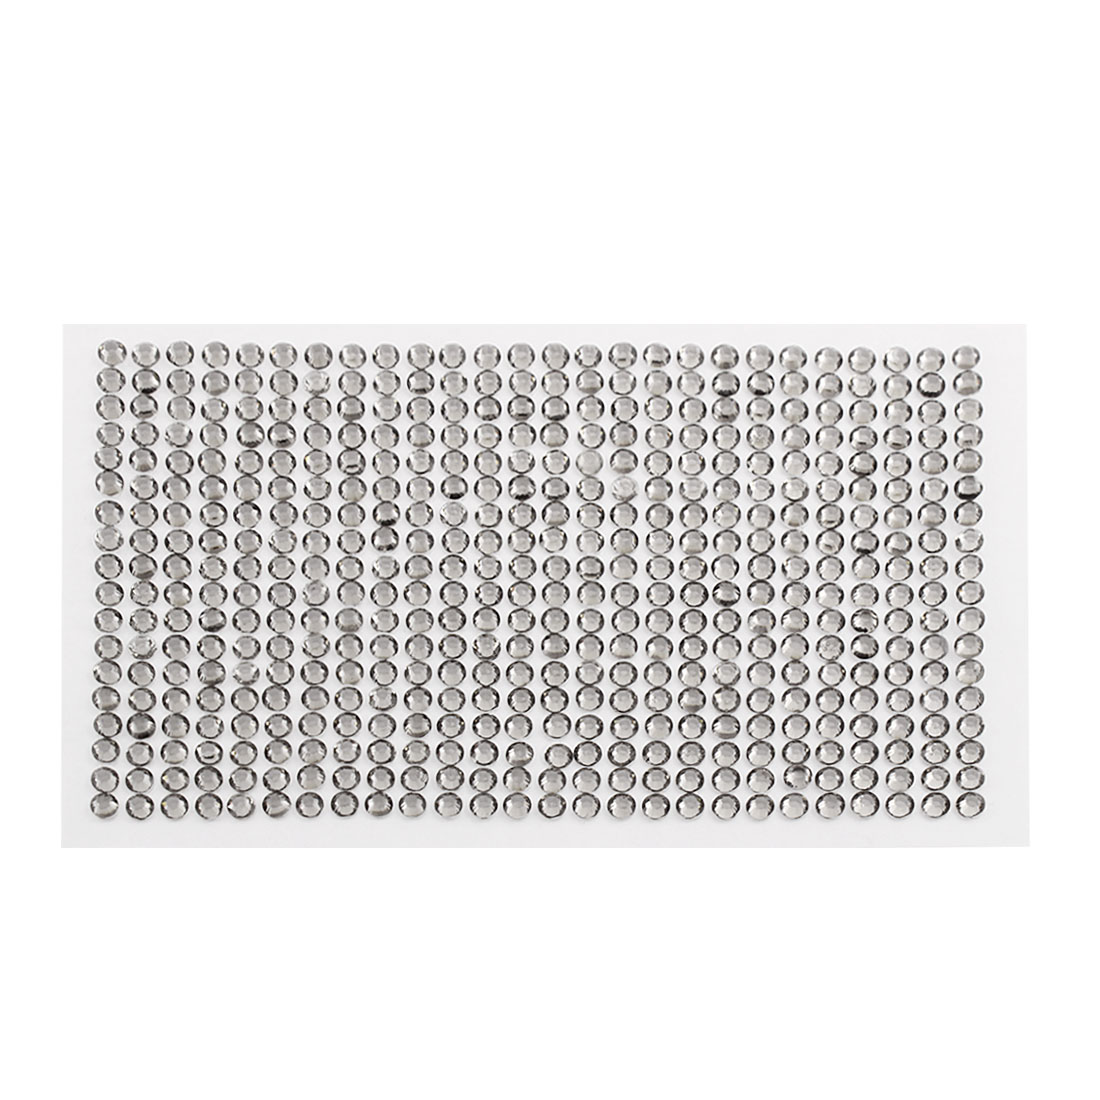 Gray 5mm Round Self Adhesive Bling Crystal Rhinestone Stickers for Car Mobile PC Decoration